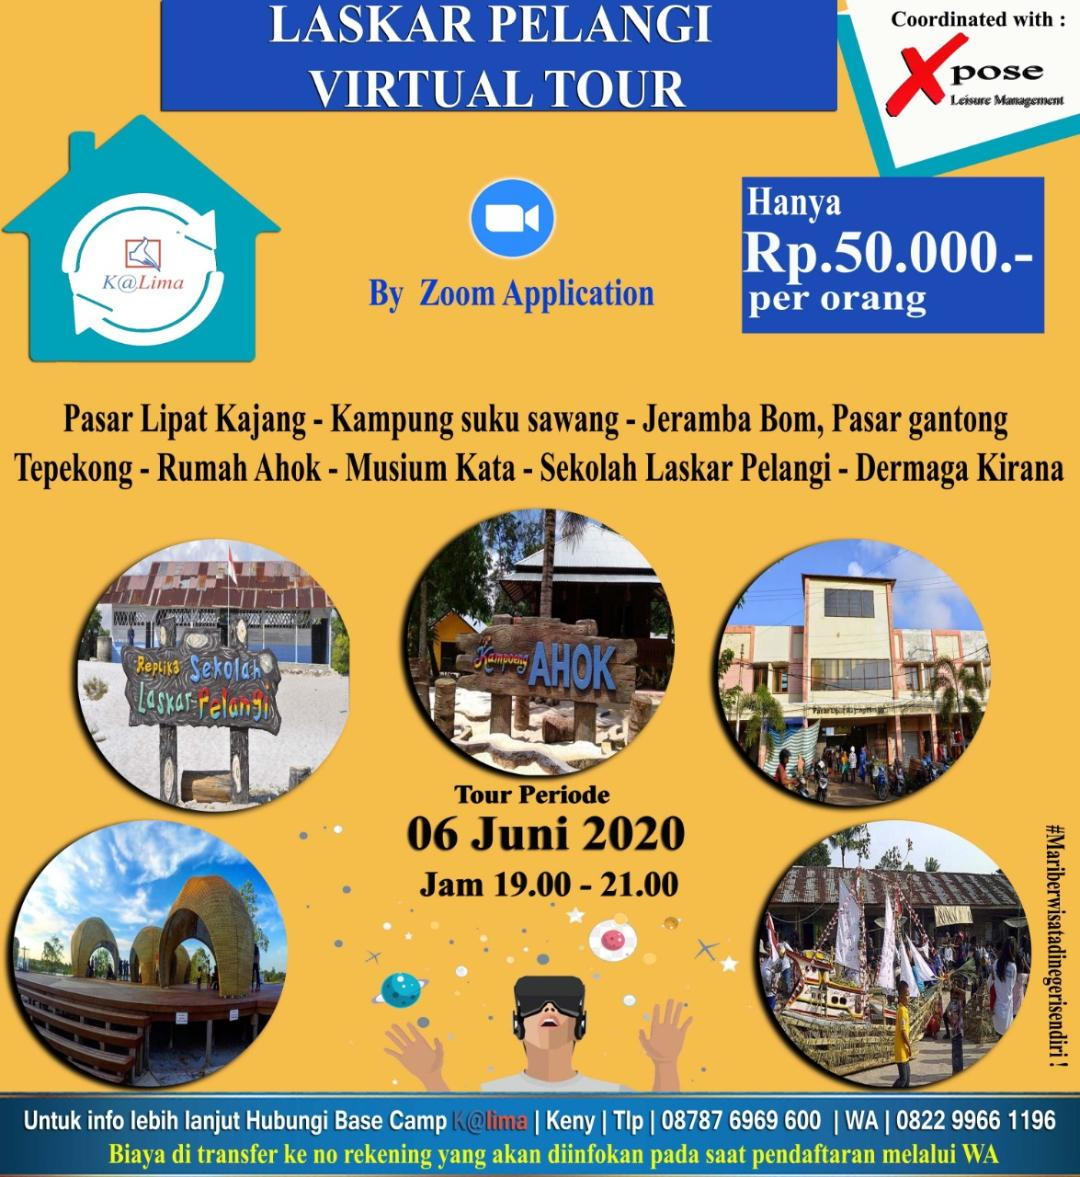 Virtual Tour Laskar Pelangi